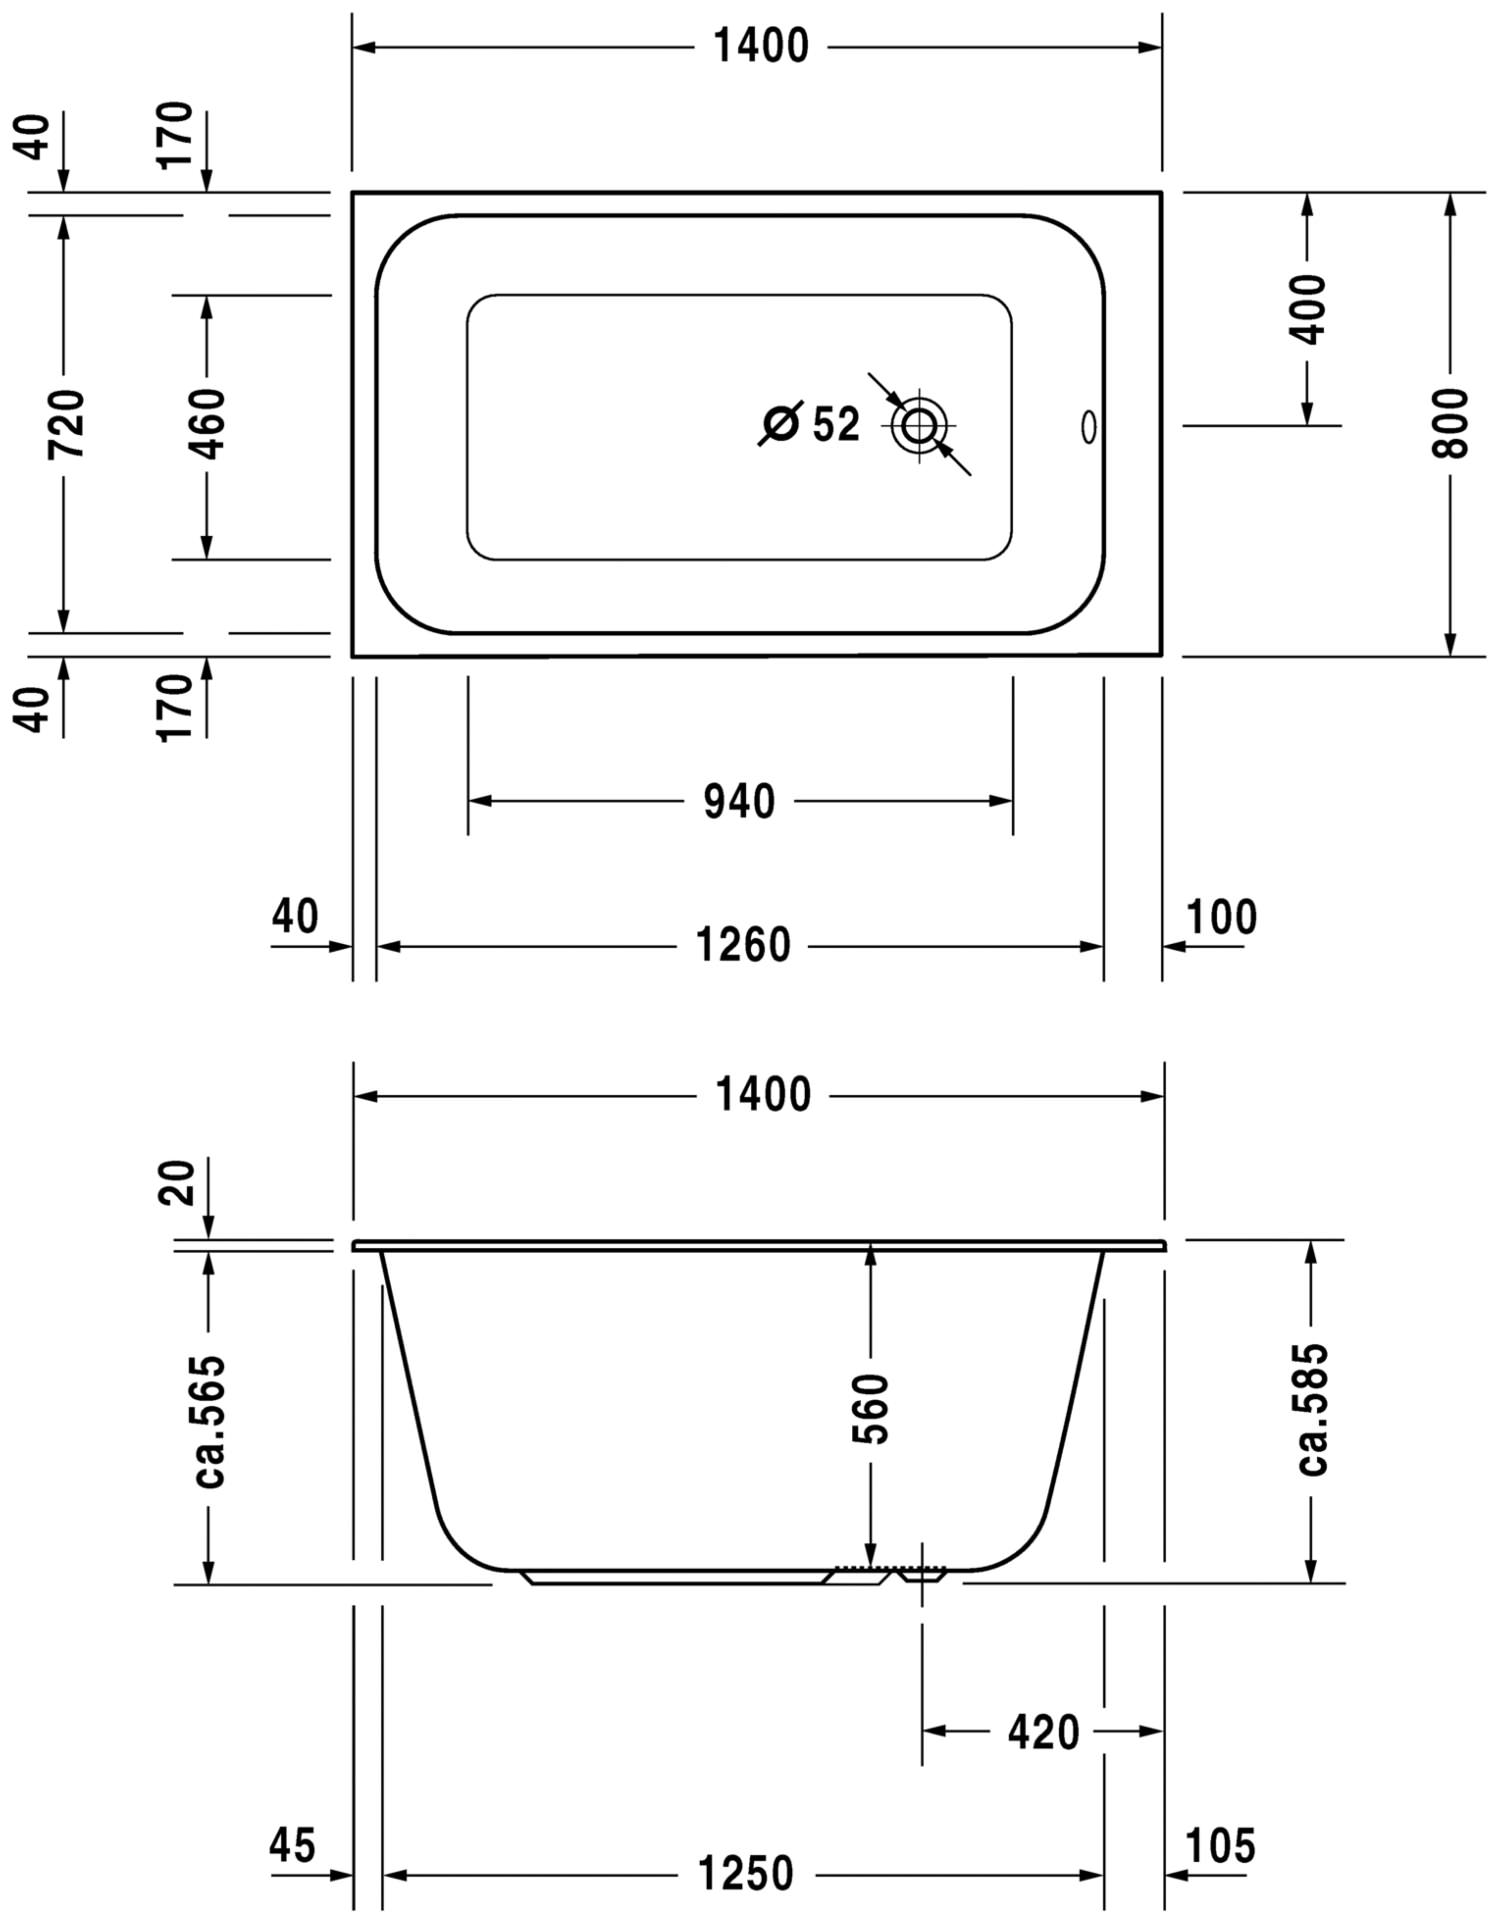 Duravit Durastyle 1400 X 800mm Rectangular Bath With Support Frame Technical Drawing Qs V52977 700237000000000